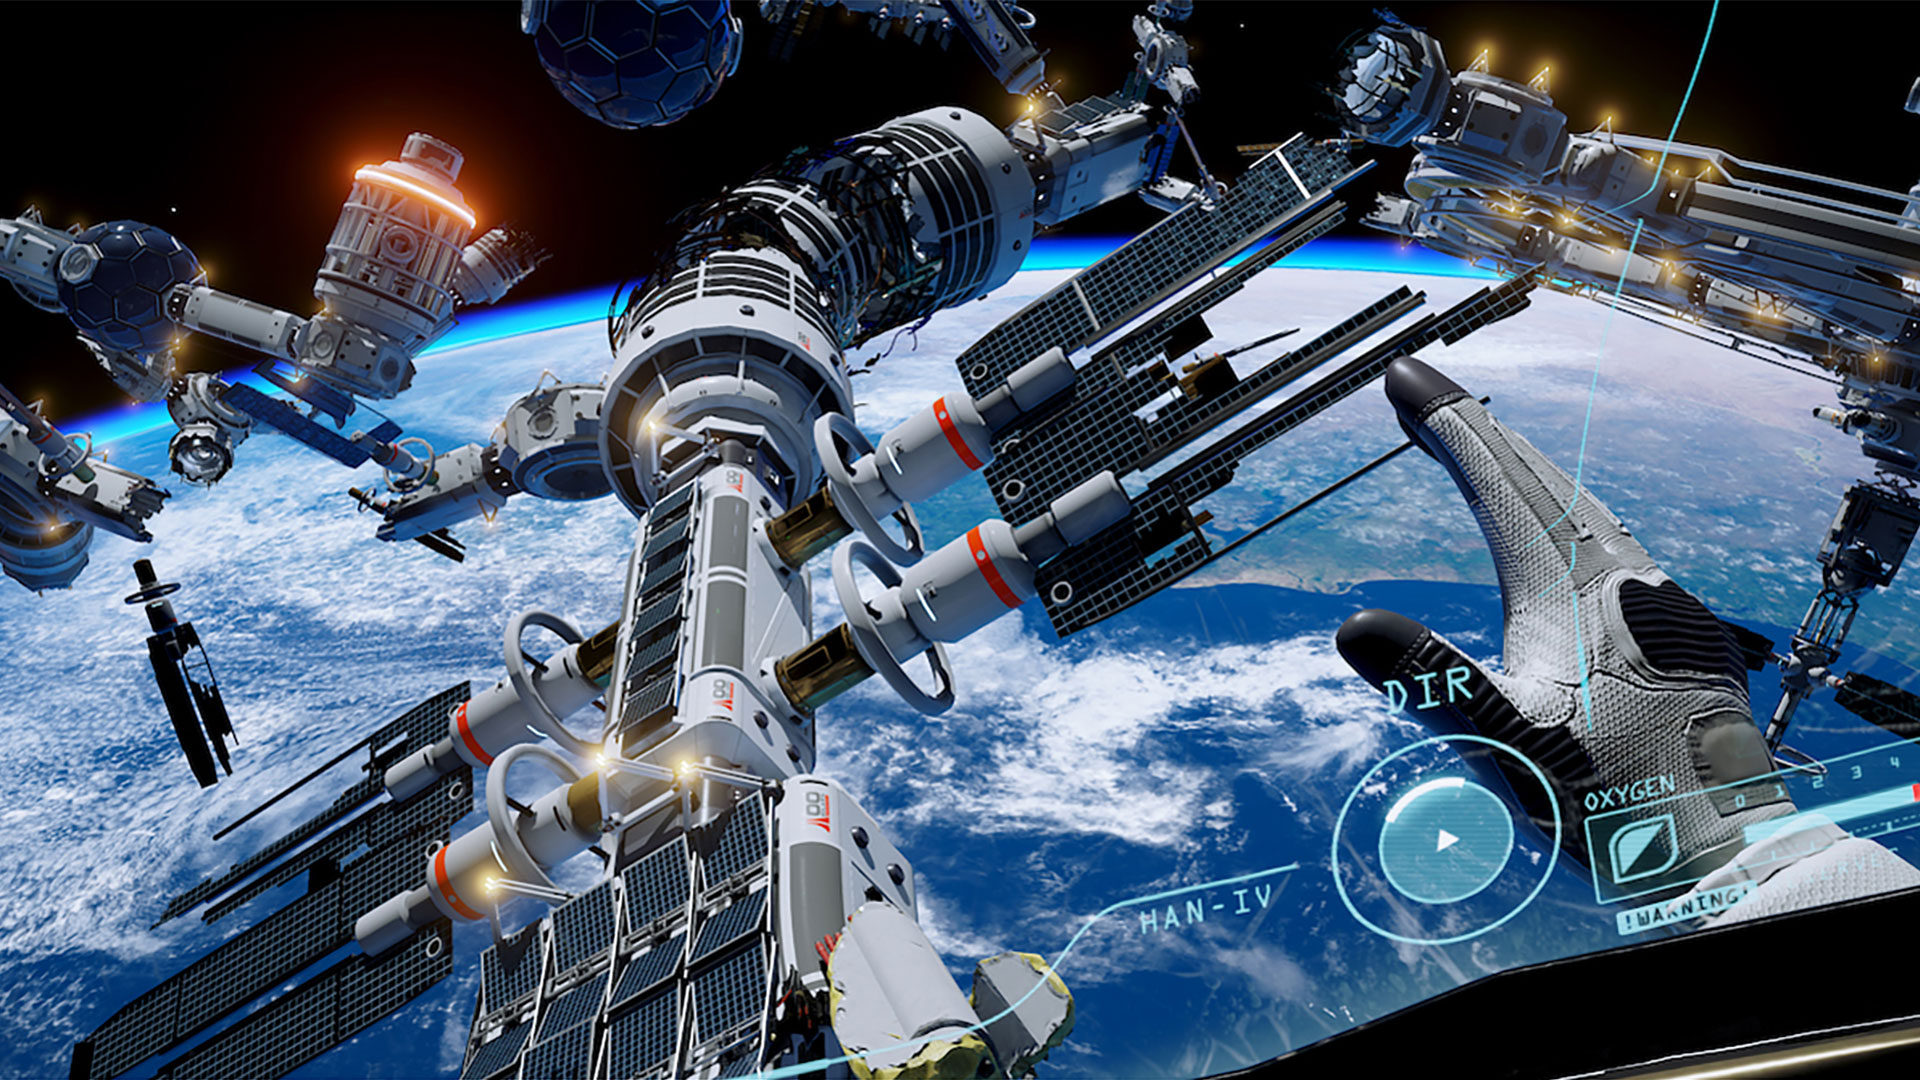 HQ ADR1FT Wallpapers | File 529.67Kb